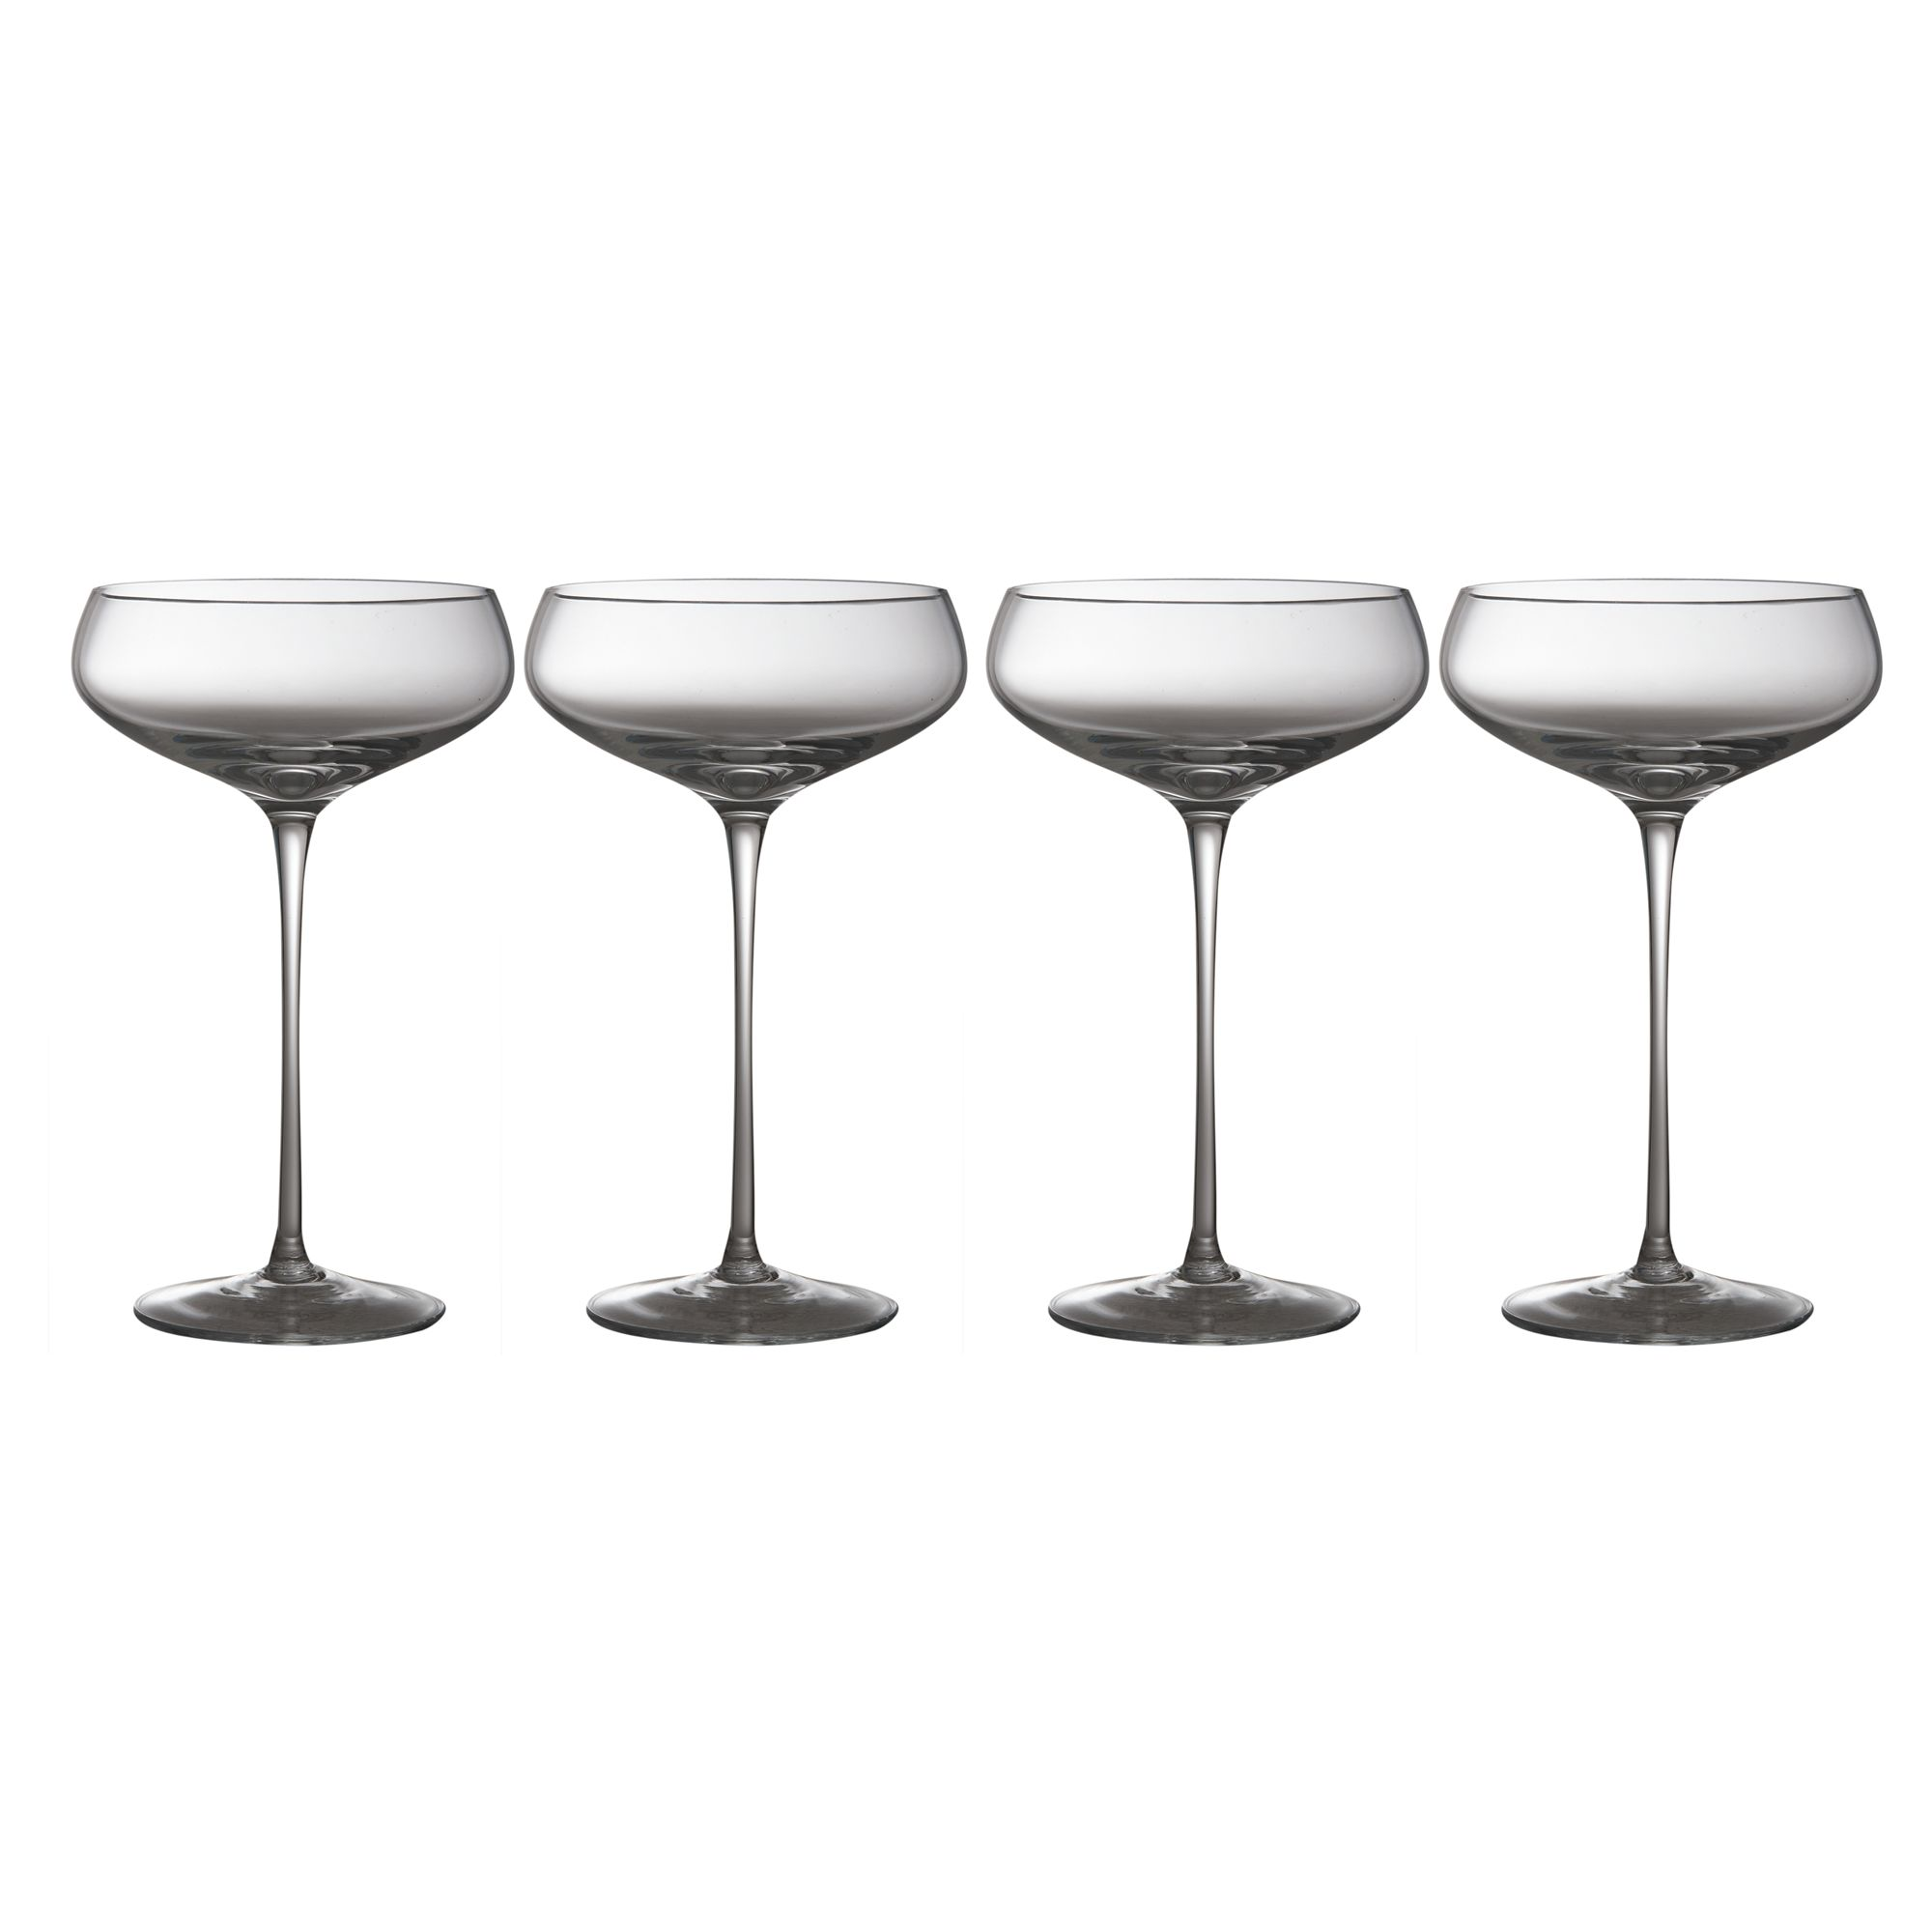 Wine collection champagne saucers, set of 4